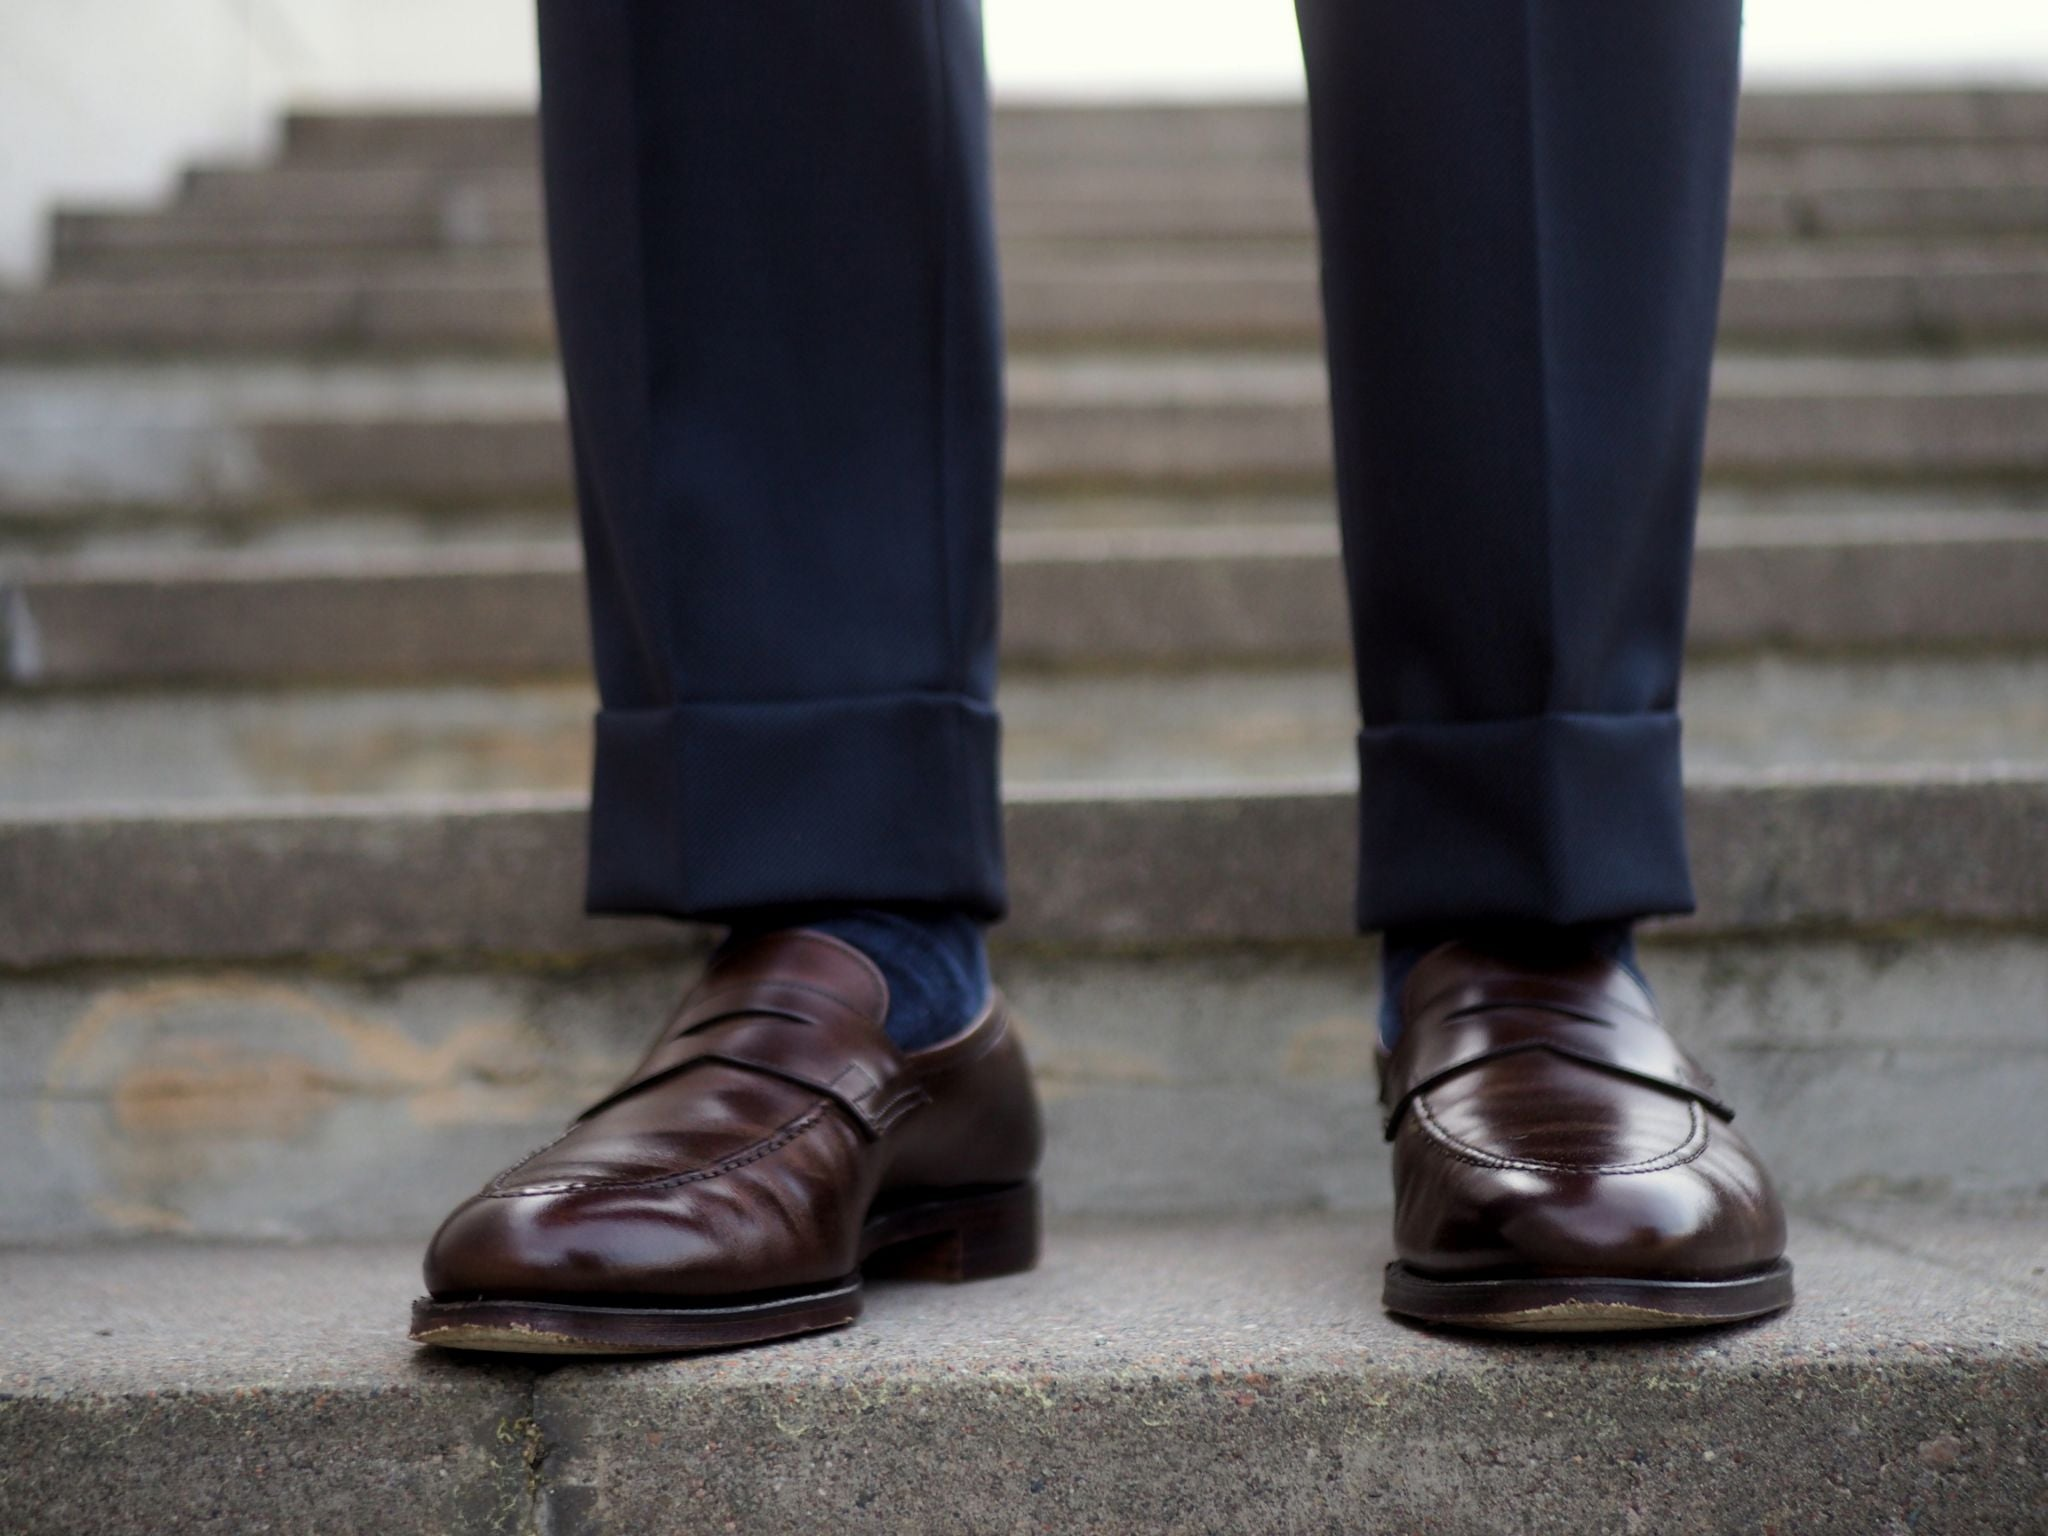 If you want to dress down your outfit, you can choose brown loafers instead of the oxford shoes.